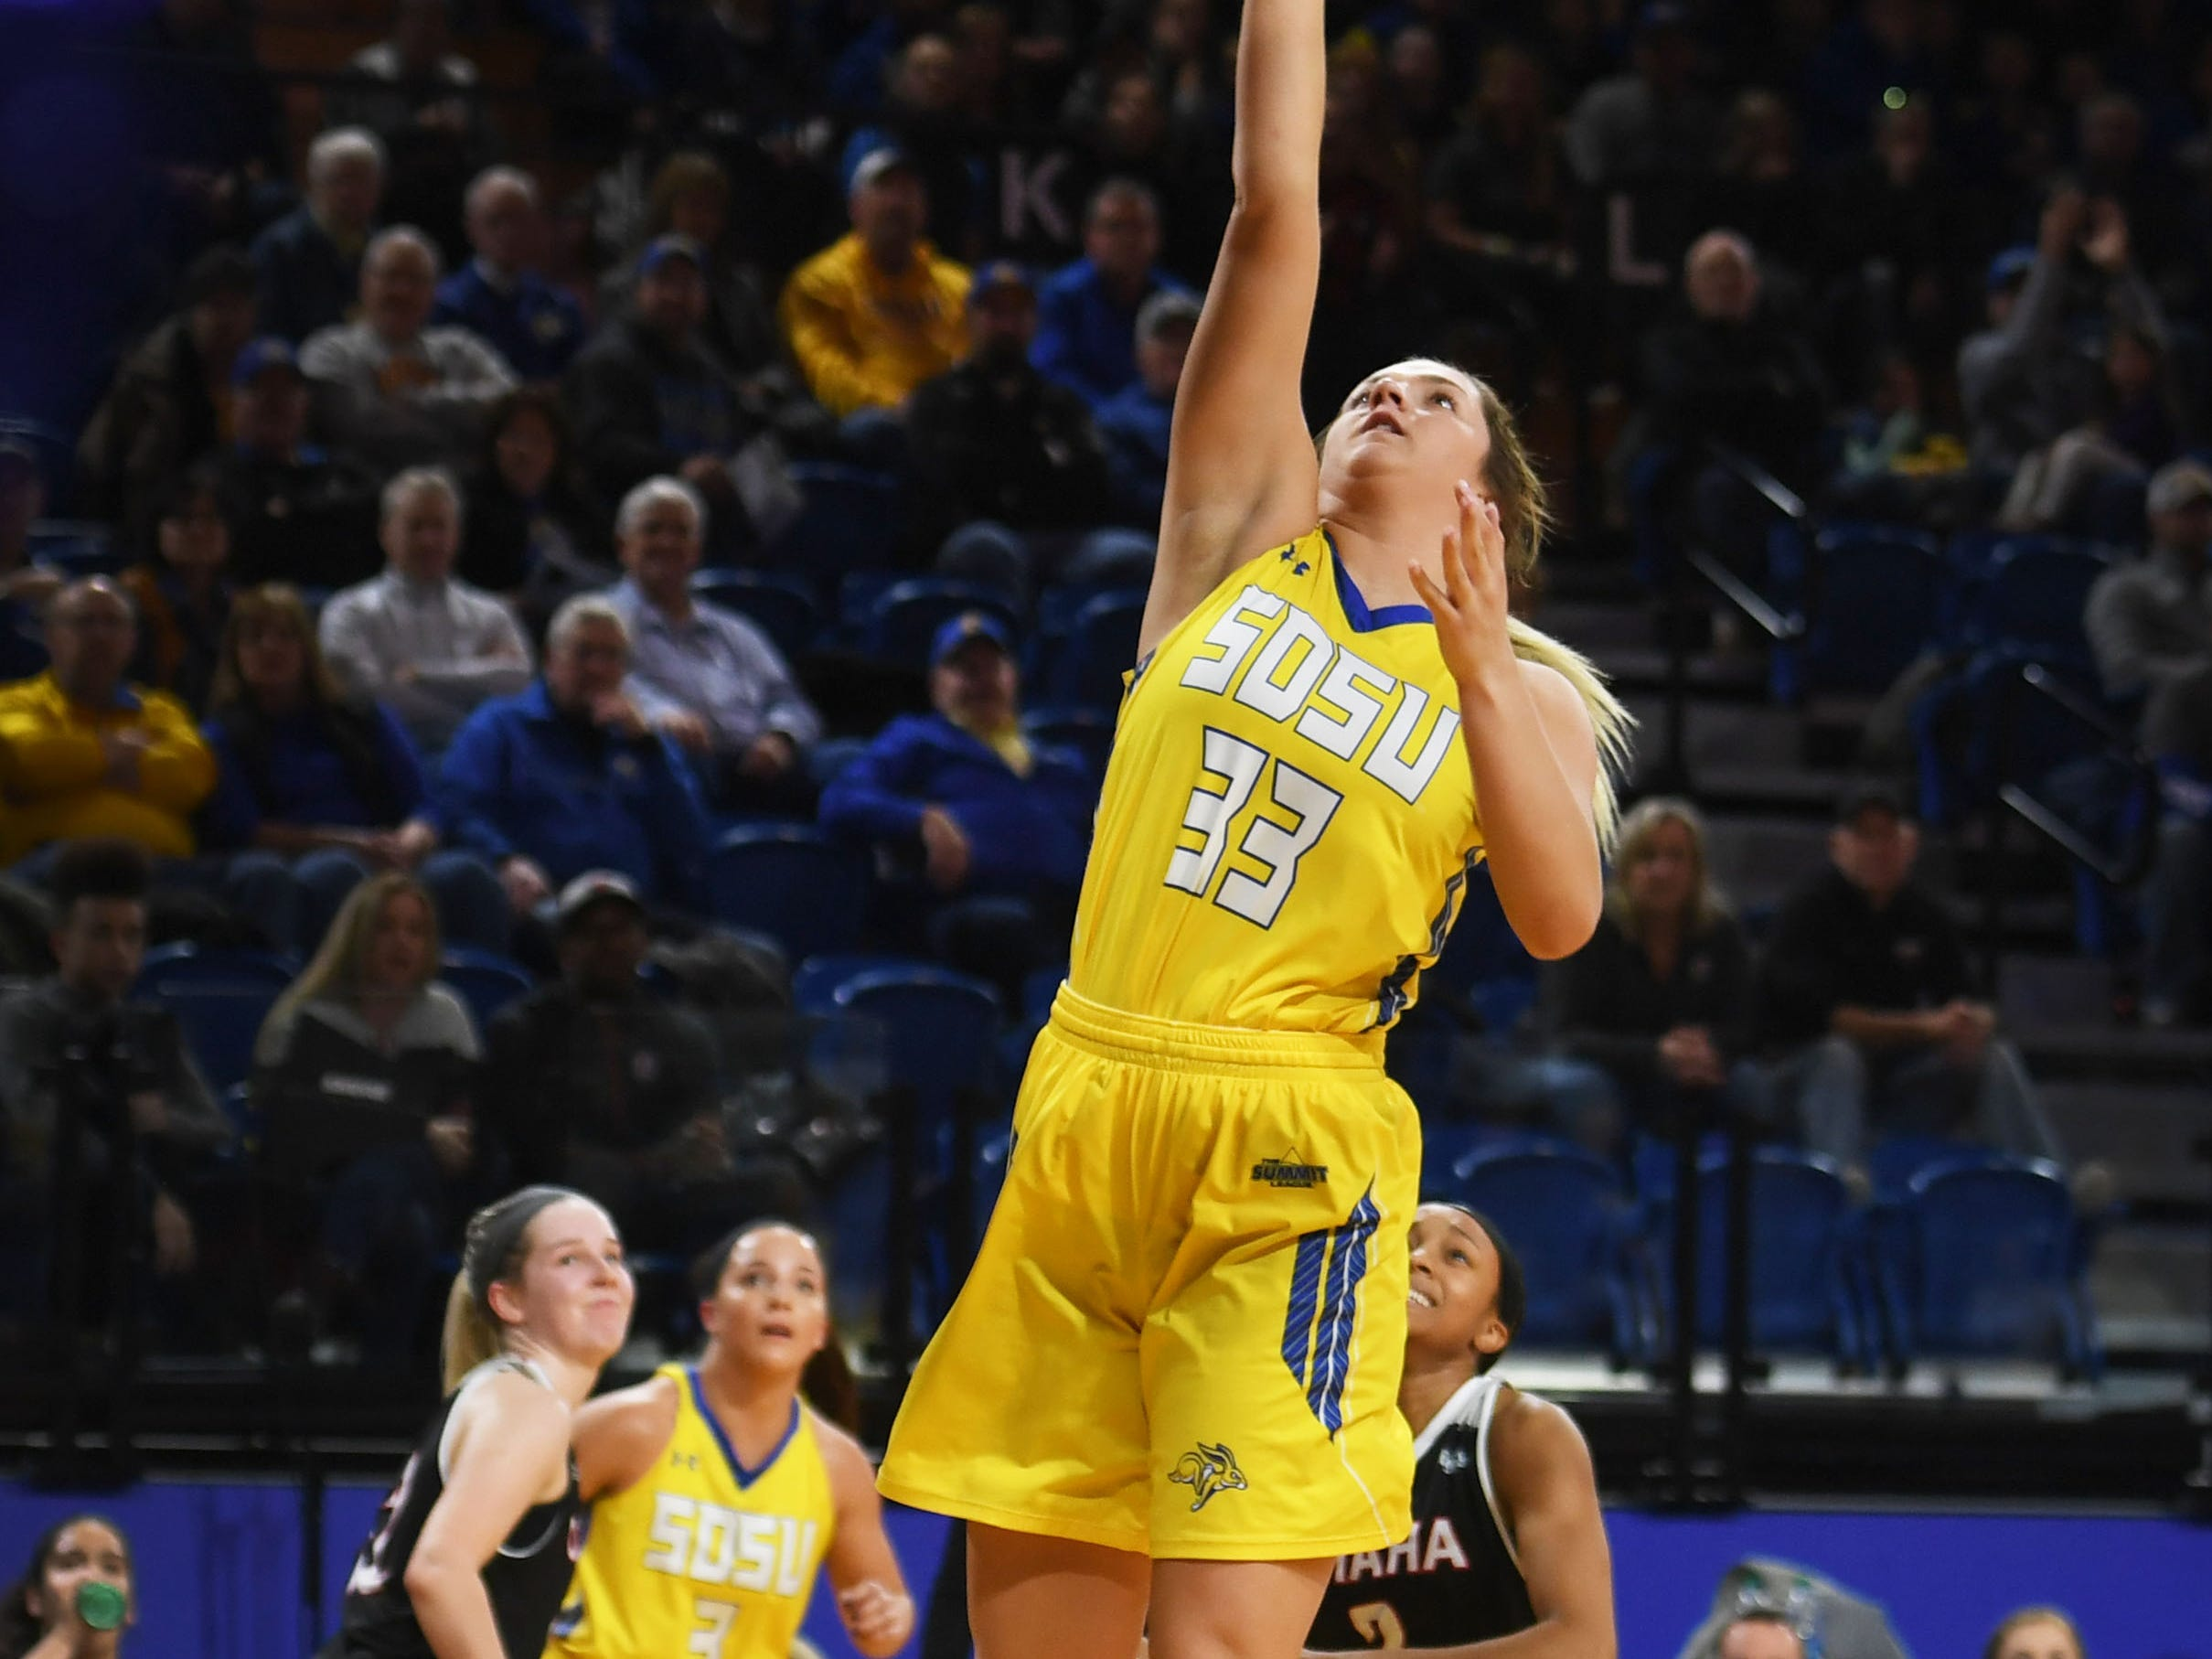 SDSU's Paiton Burckhard attempts to score against Omaha during the game Saturday, Jan. 26, at Frost Arena in Brookings.